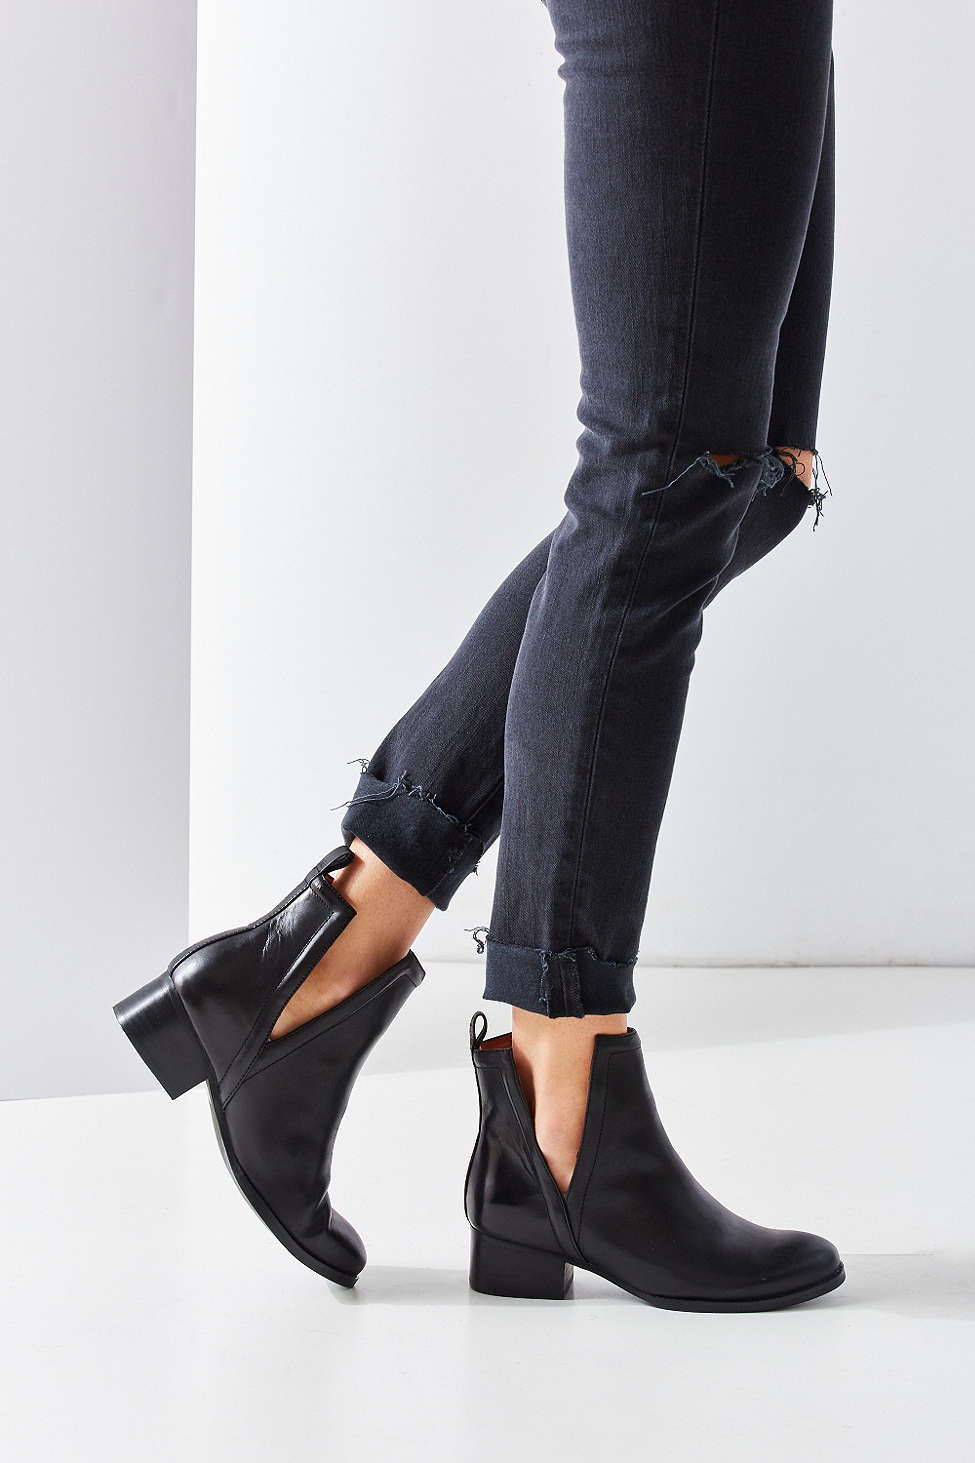 Jeffrey Campbell Oriley Cutout Ankle Boot. Urban Outfitters. $195.